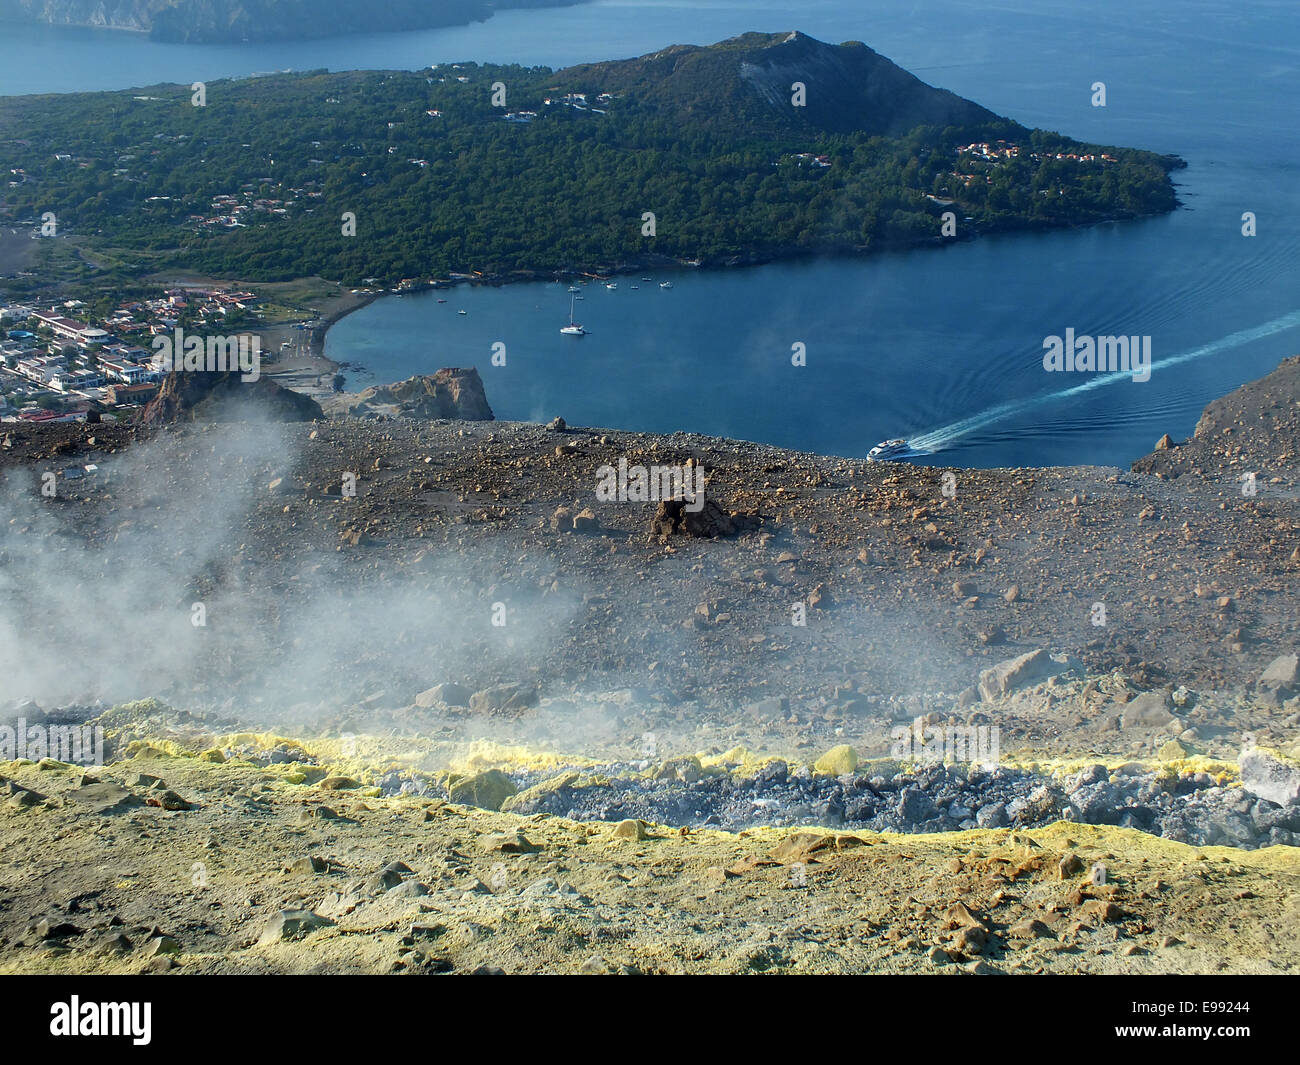 The sulfur-yellow peaks of the Gran craters with its fumaroles rises menacingly above the harbor of Porto Levante Stock Photo